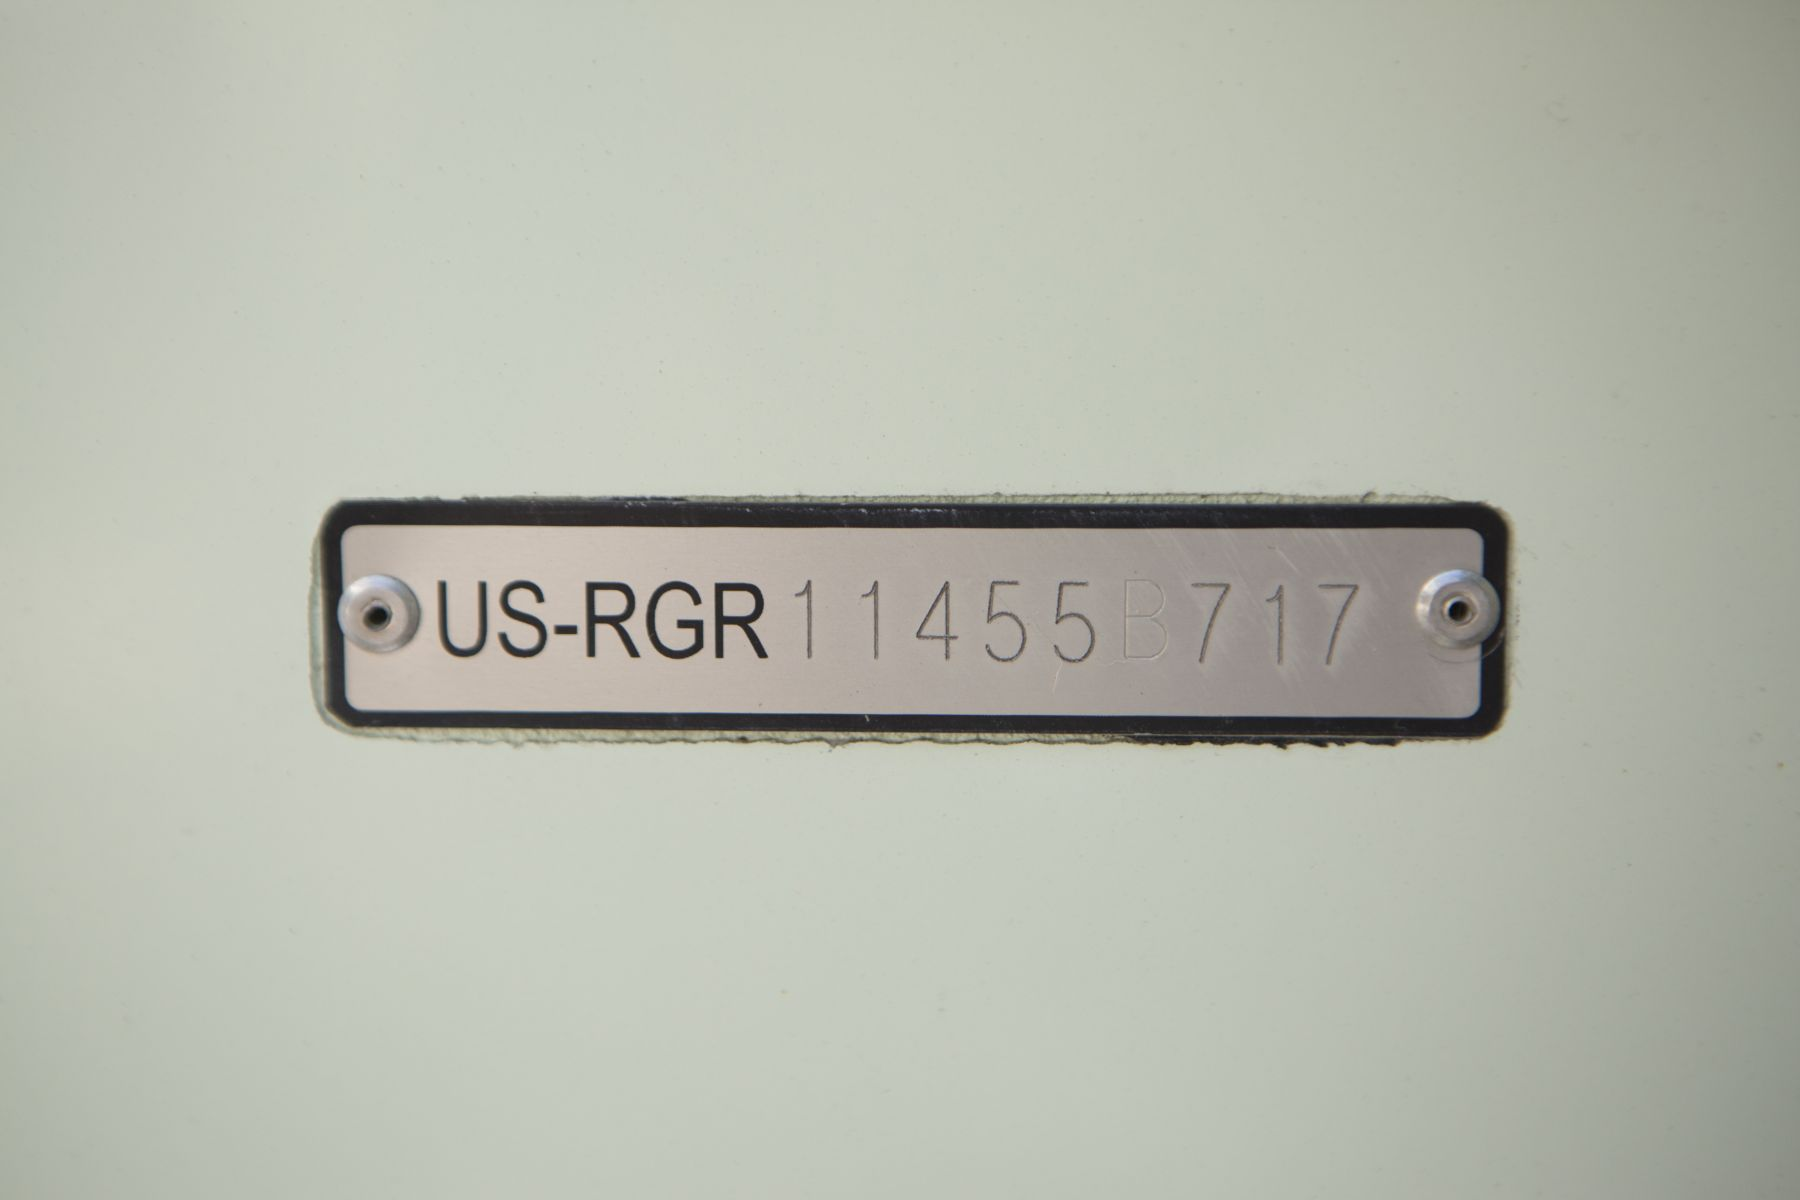 A hull identification number on a watercraft.